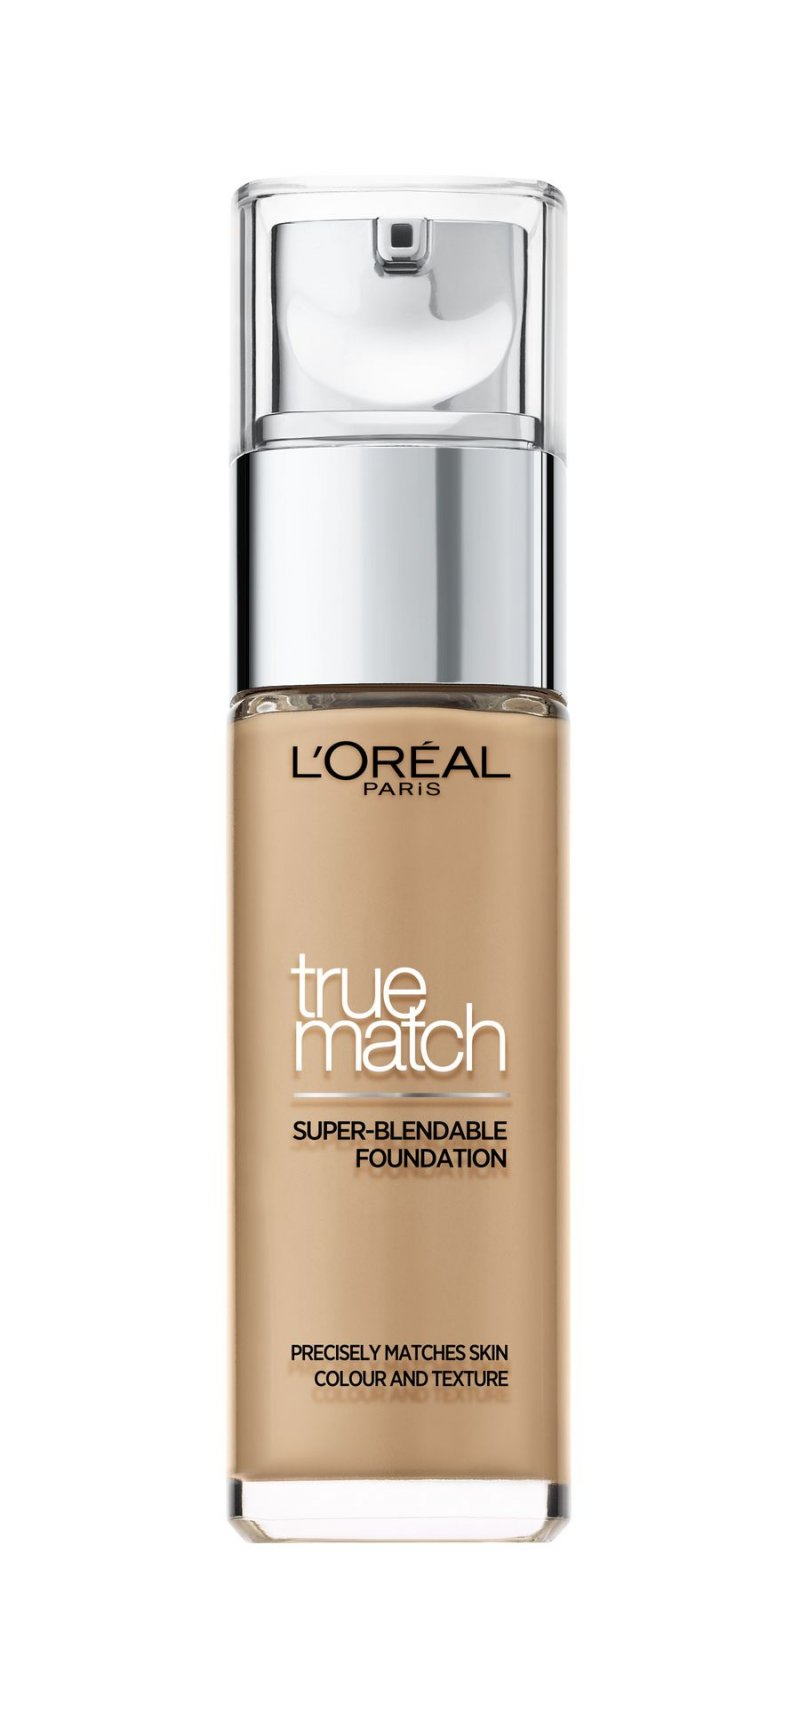 Loréal True Match Foundation - 6.5 D/6.5 W Caramel